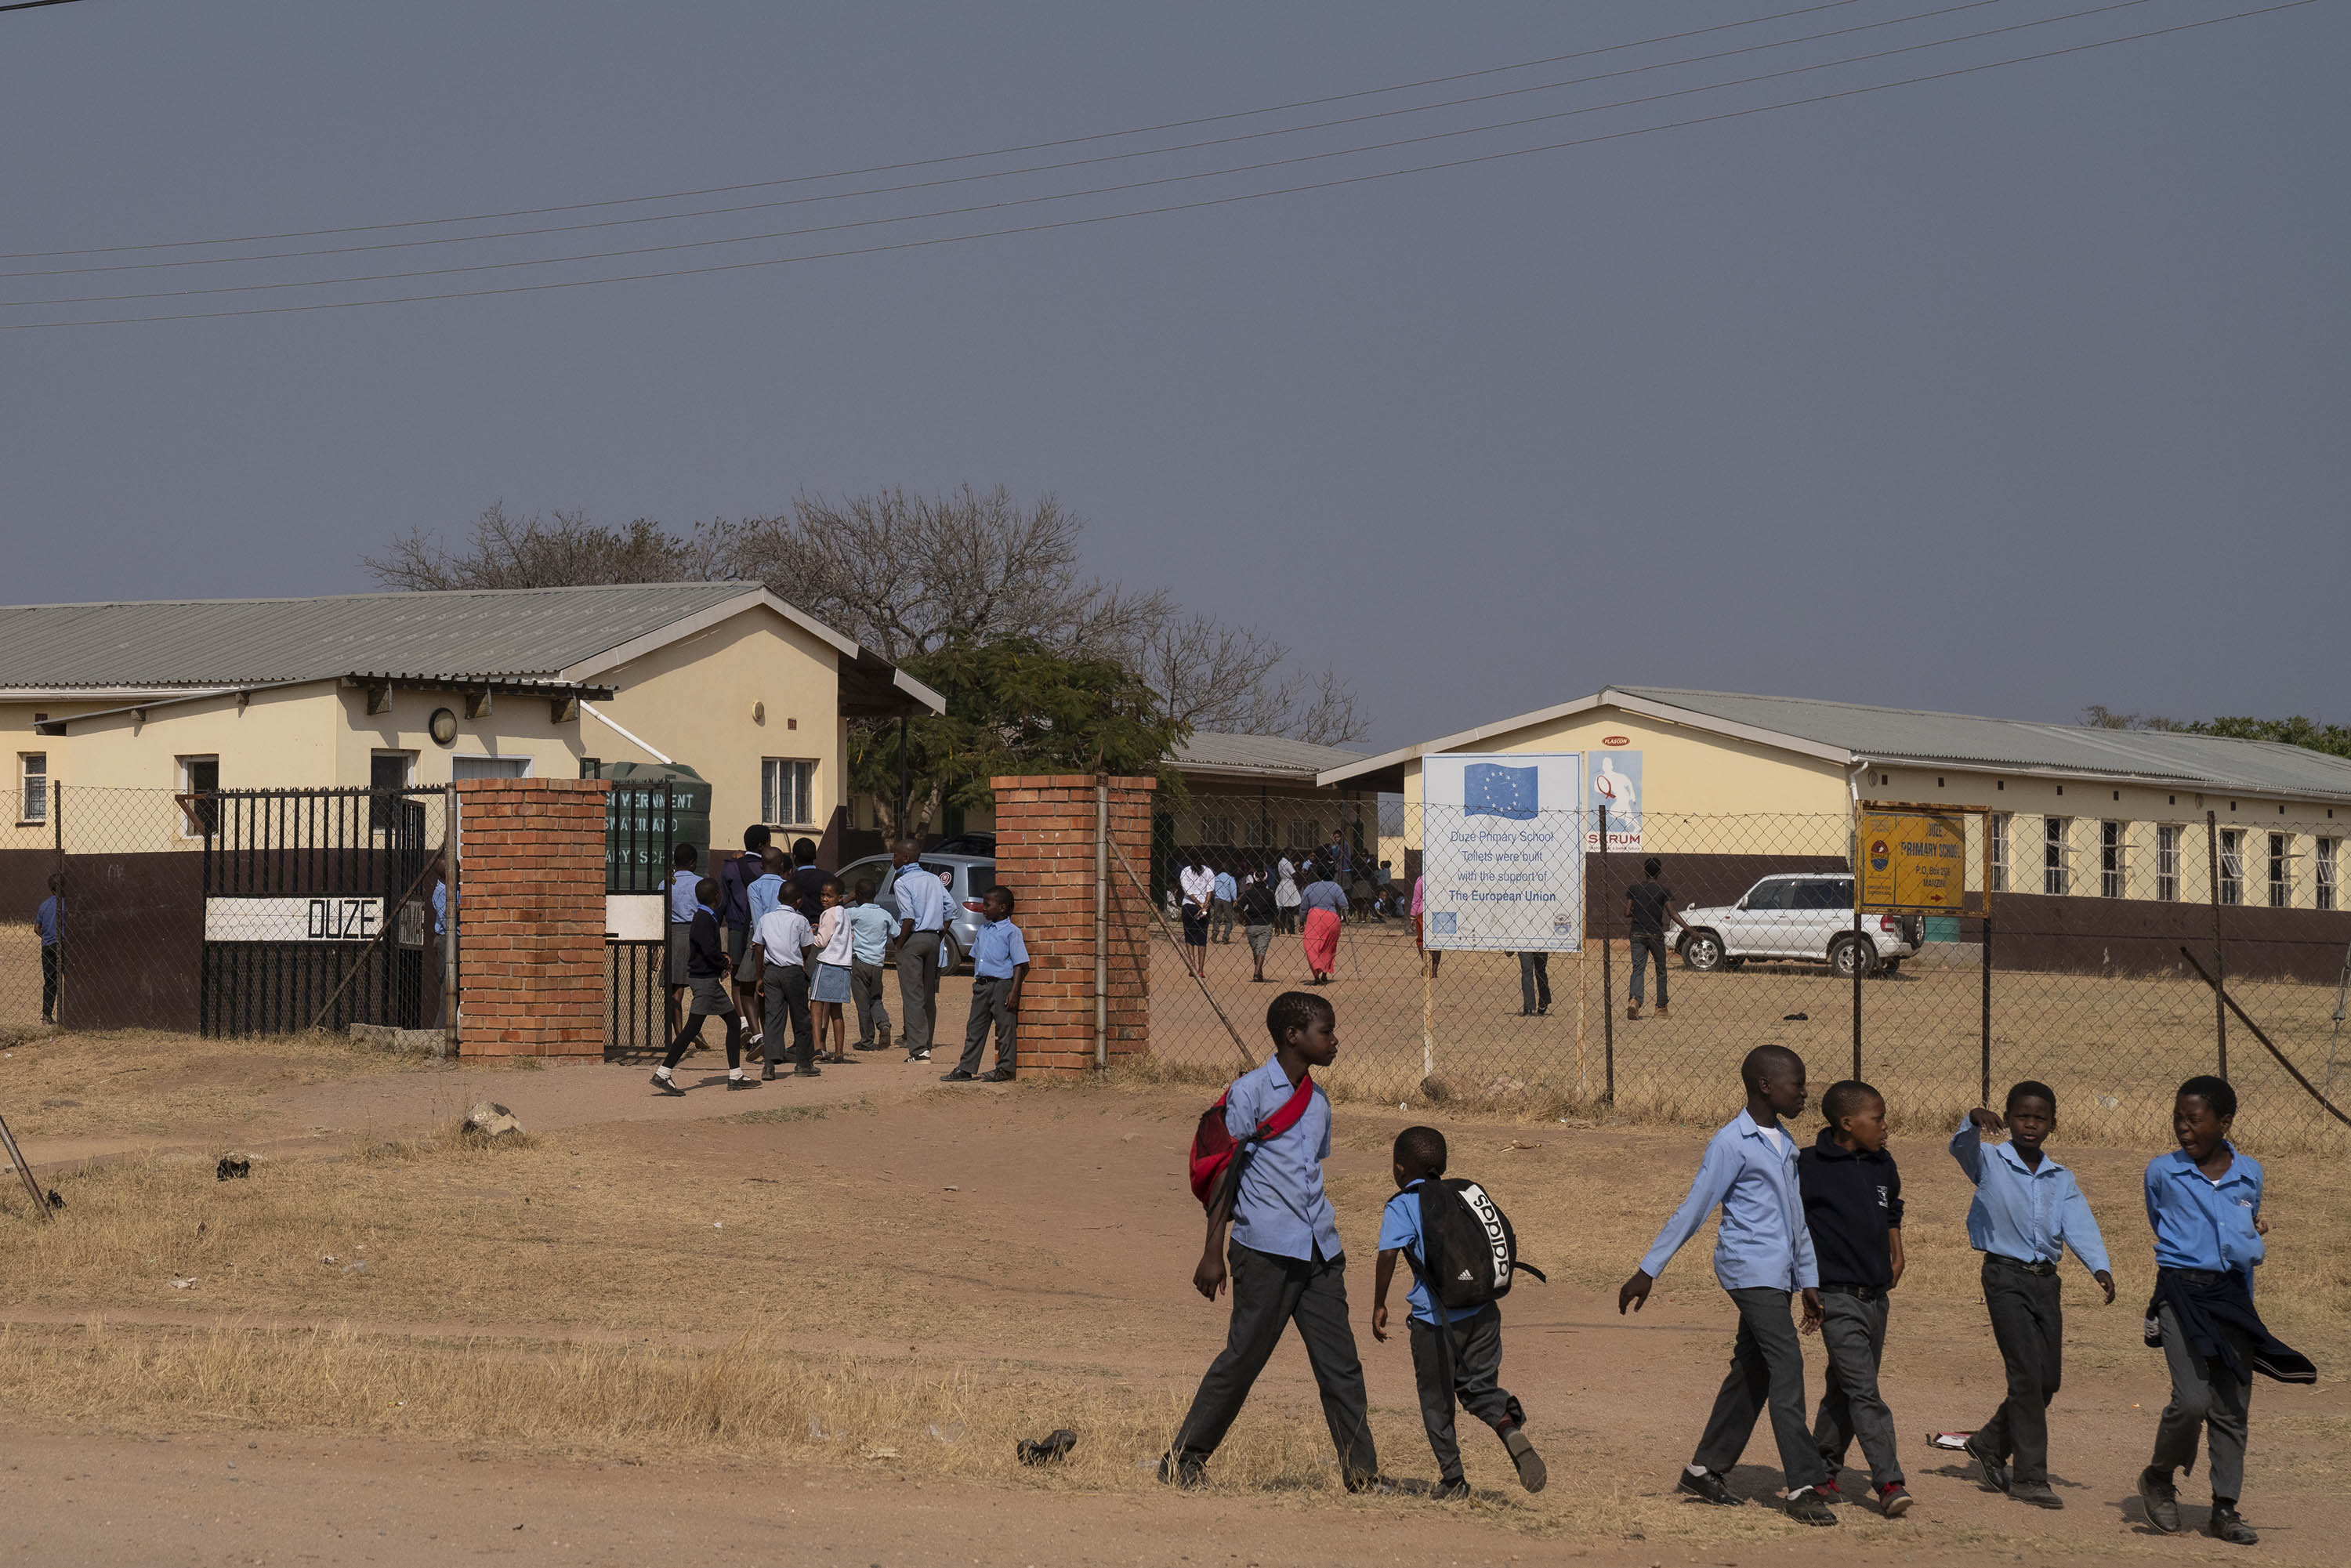 8 August 2019: Previously, parents of learners in eSwatini had to pay school fees from primary to secondary school, and sometimes up to tertiary level. In 2010, the government announced that parents will no longer pay for primary education.